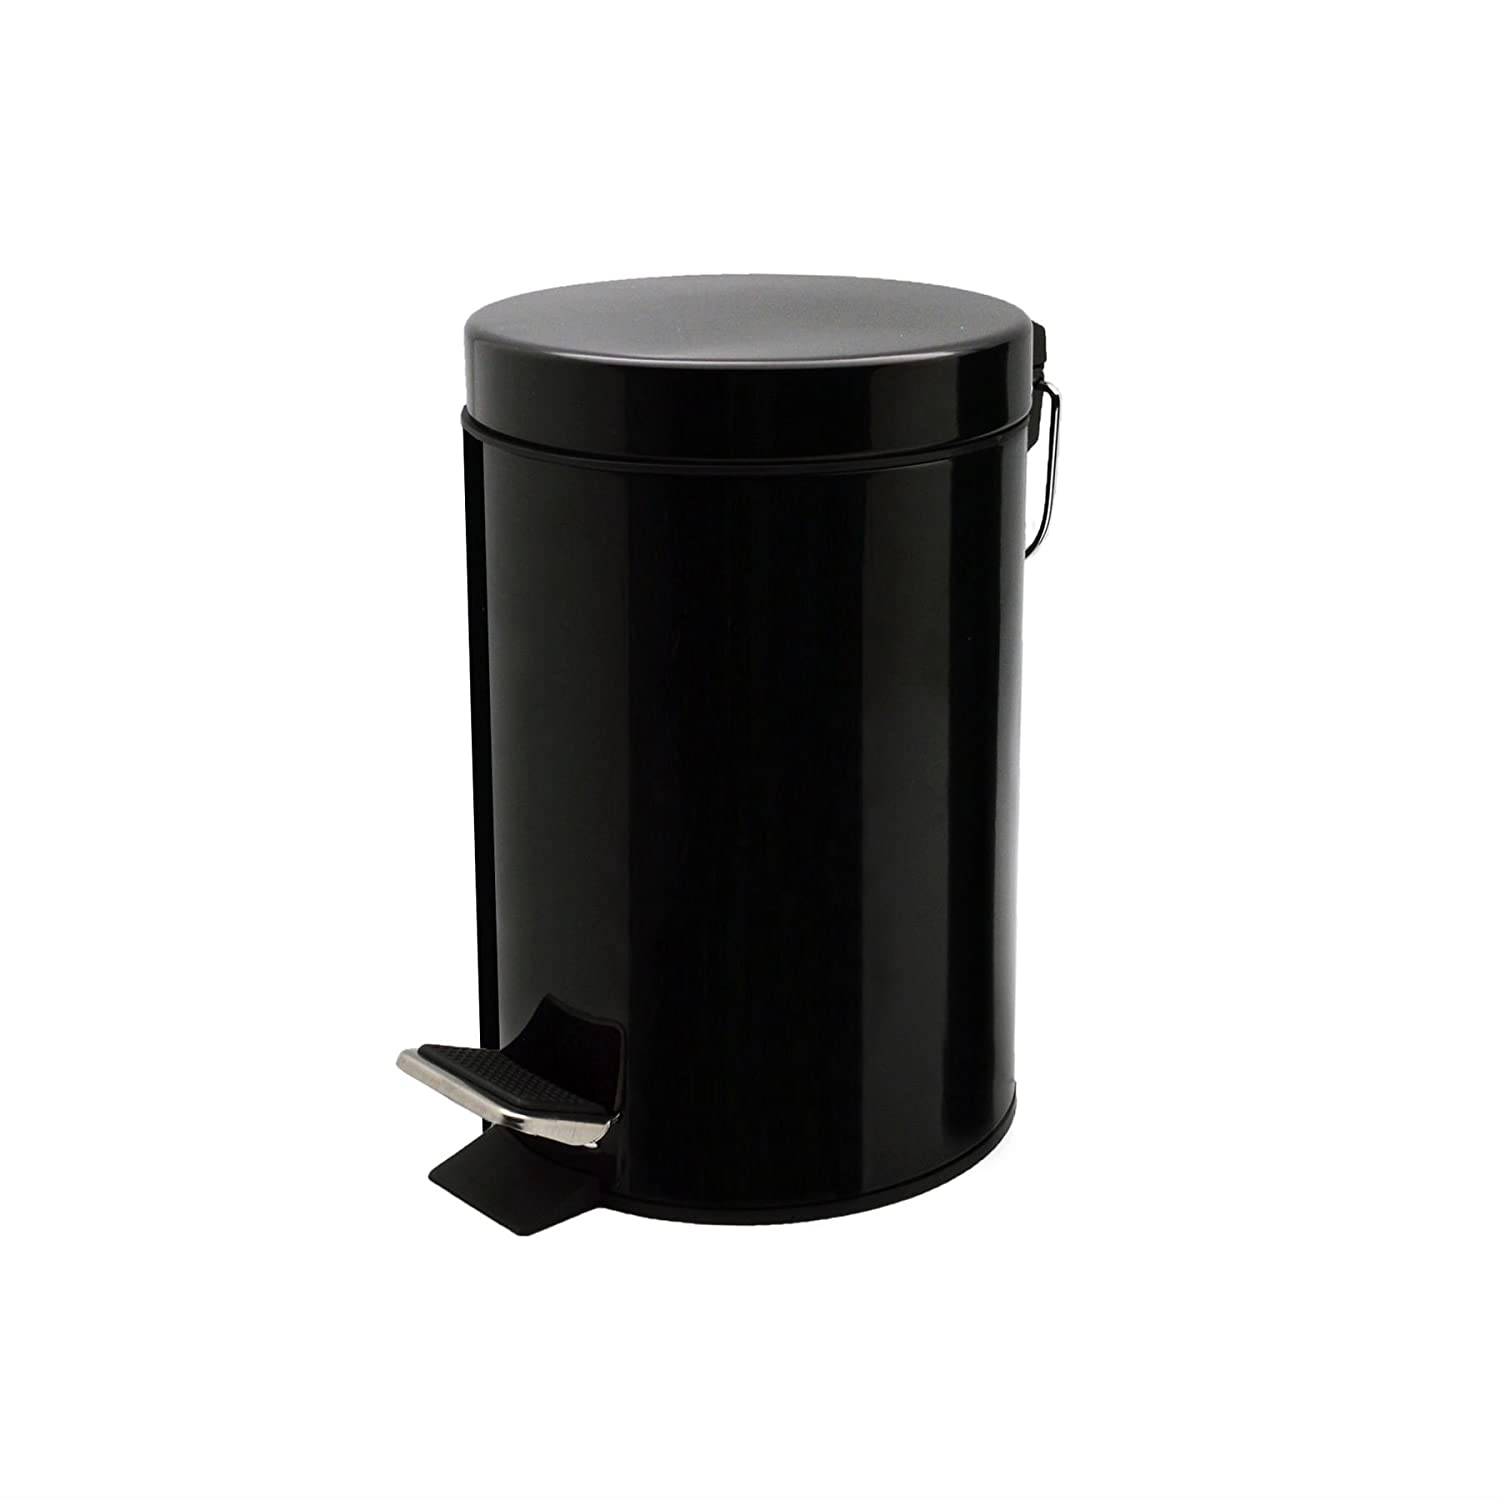 Harbour Housewares Bathroom Pedal Bin With Inner Bucket - 3 Litre Bin - Black Finish